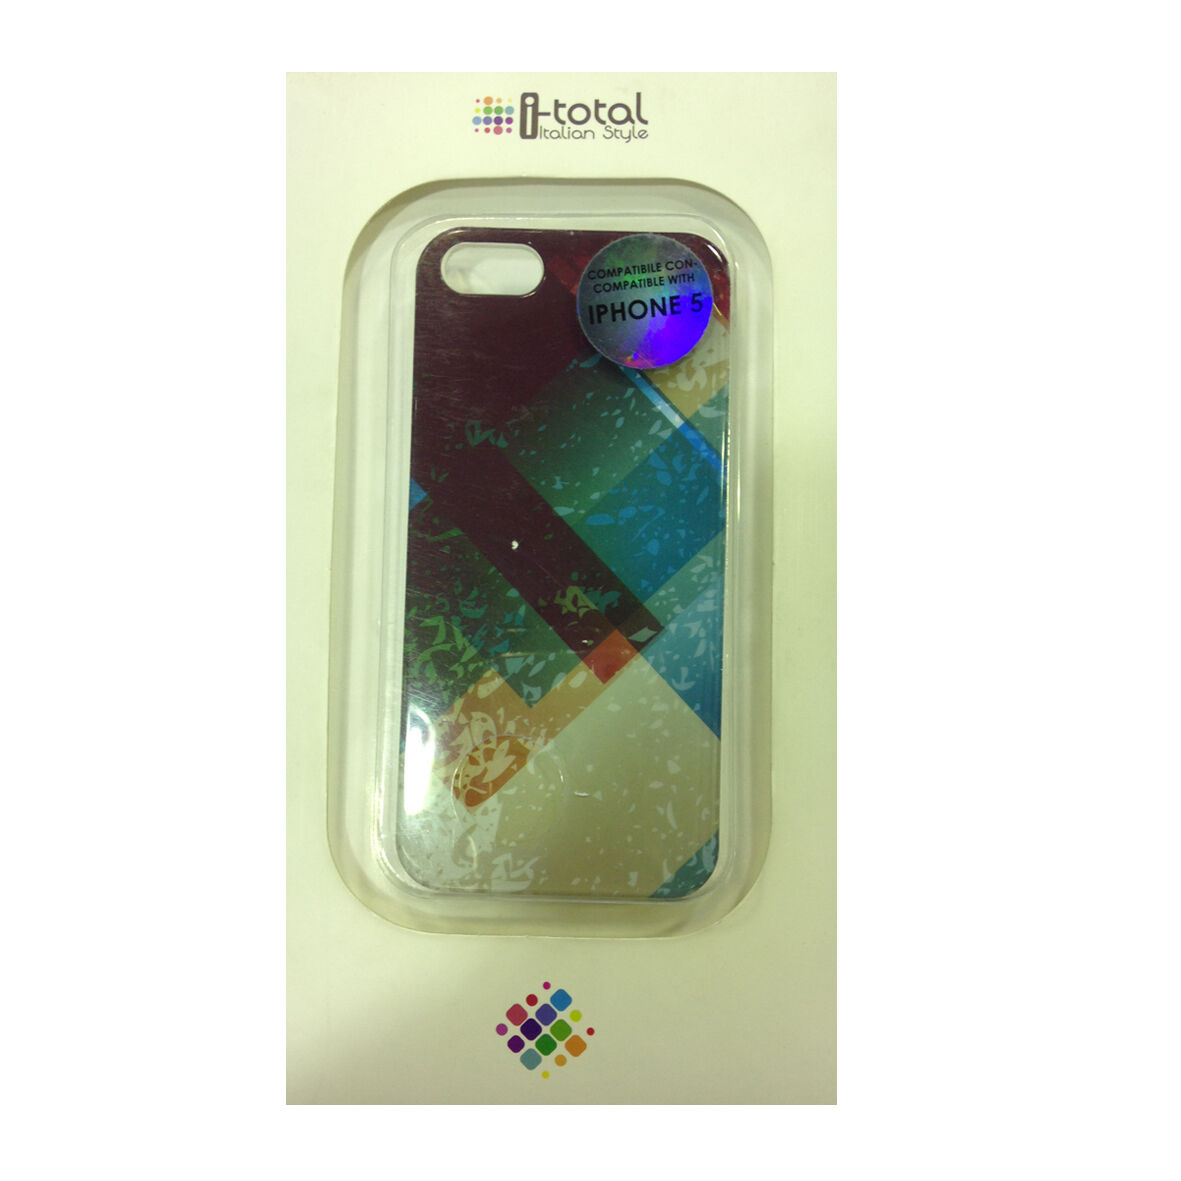 COVER mascherine iphone 5/5S geometrica multicolore rigida in plastica I-TOTAL